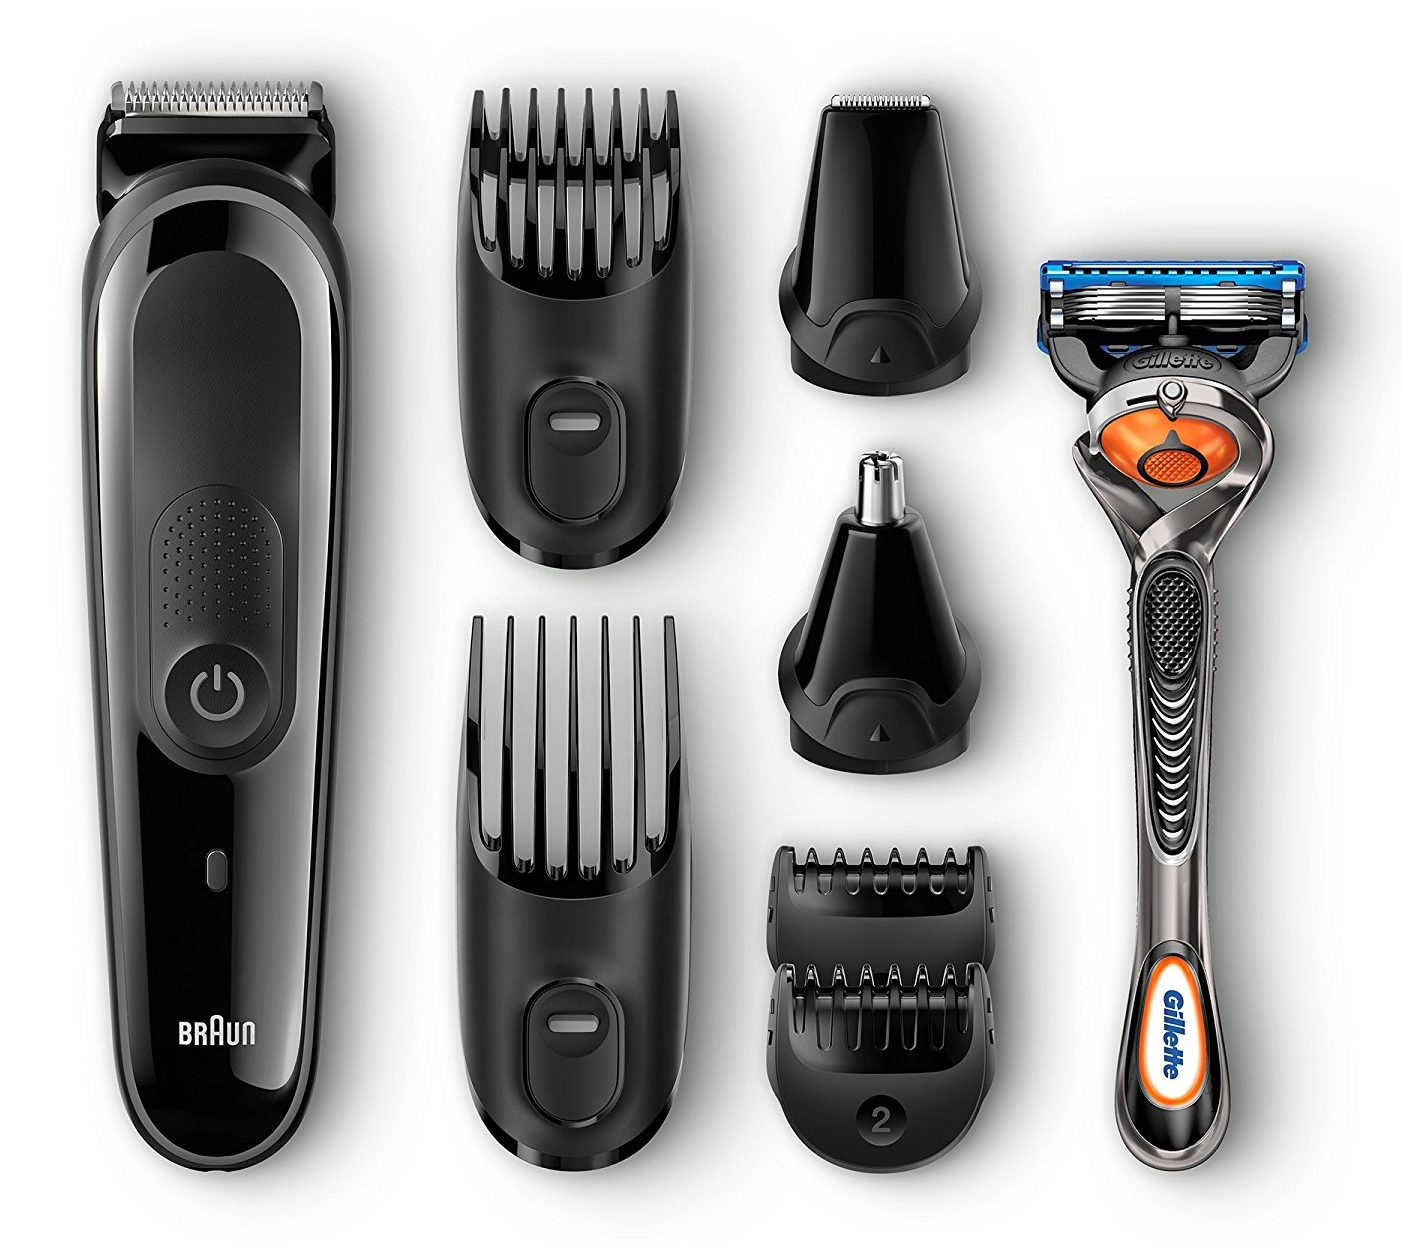 Braun Multigrooming Kit MGK 3060